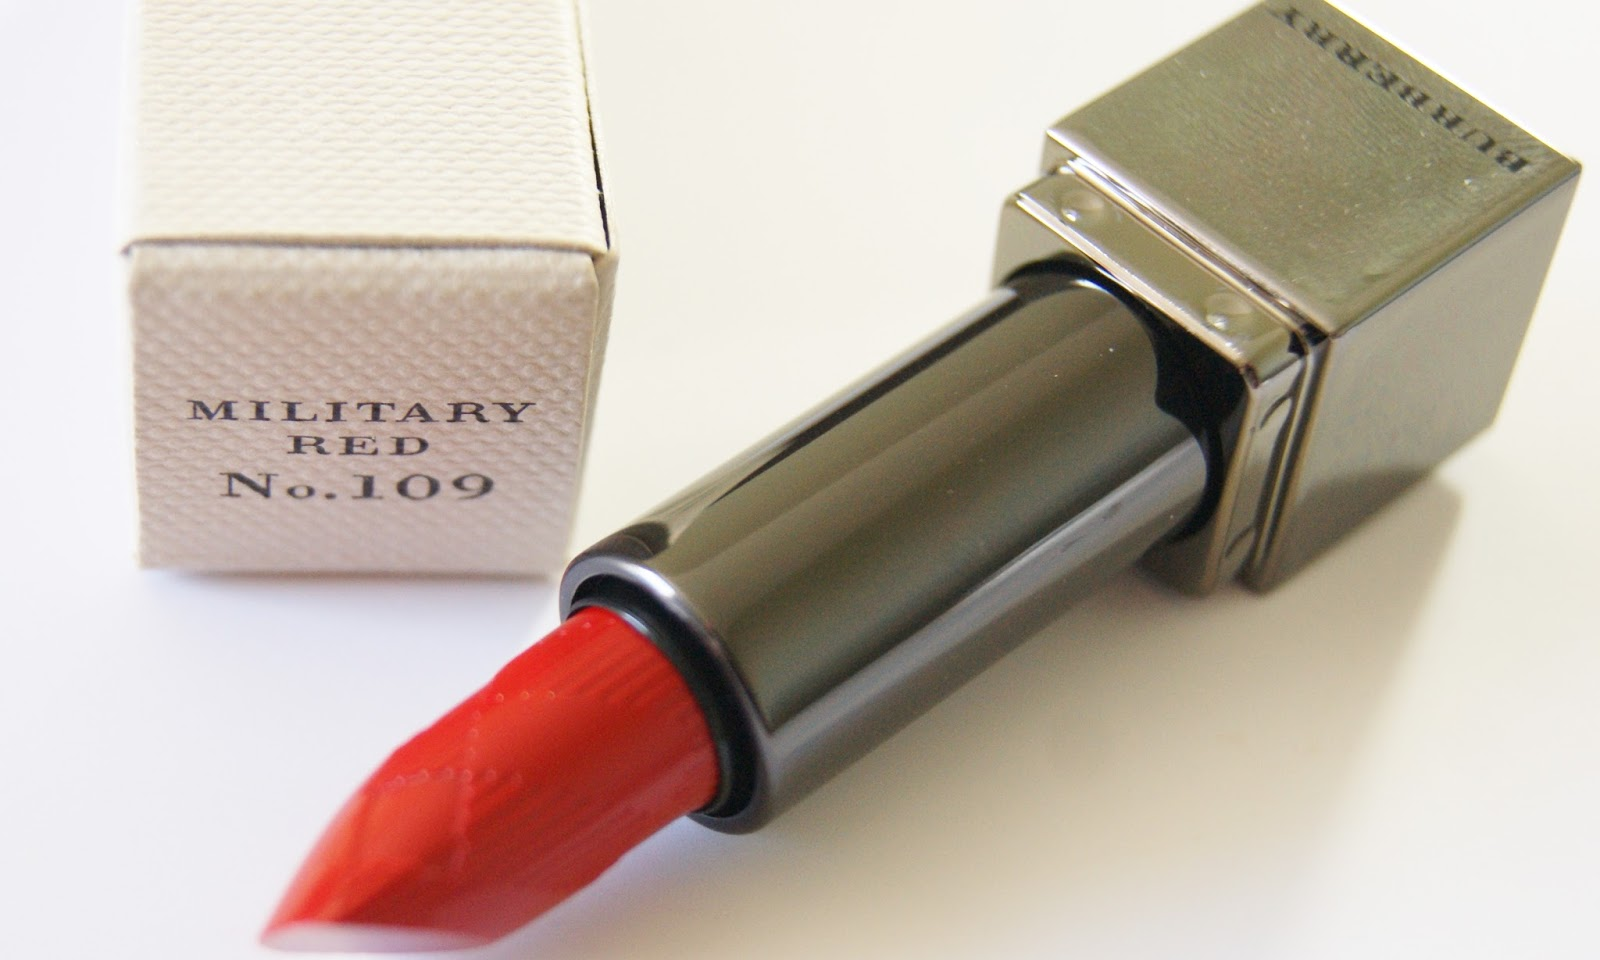 Burberry Kisses Lipstick in 109 Military Red